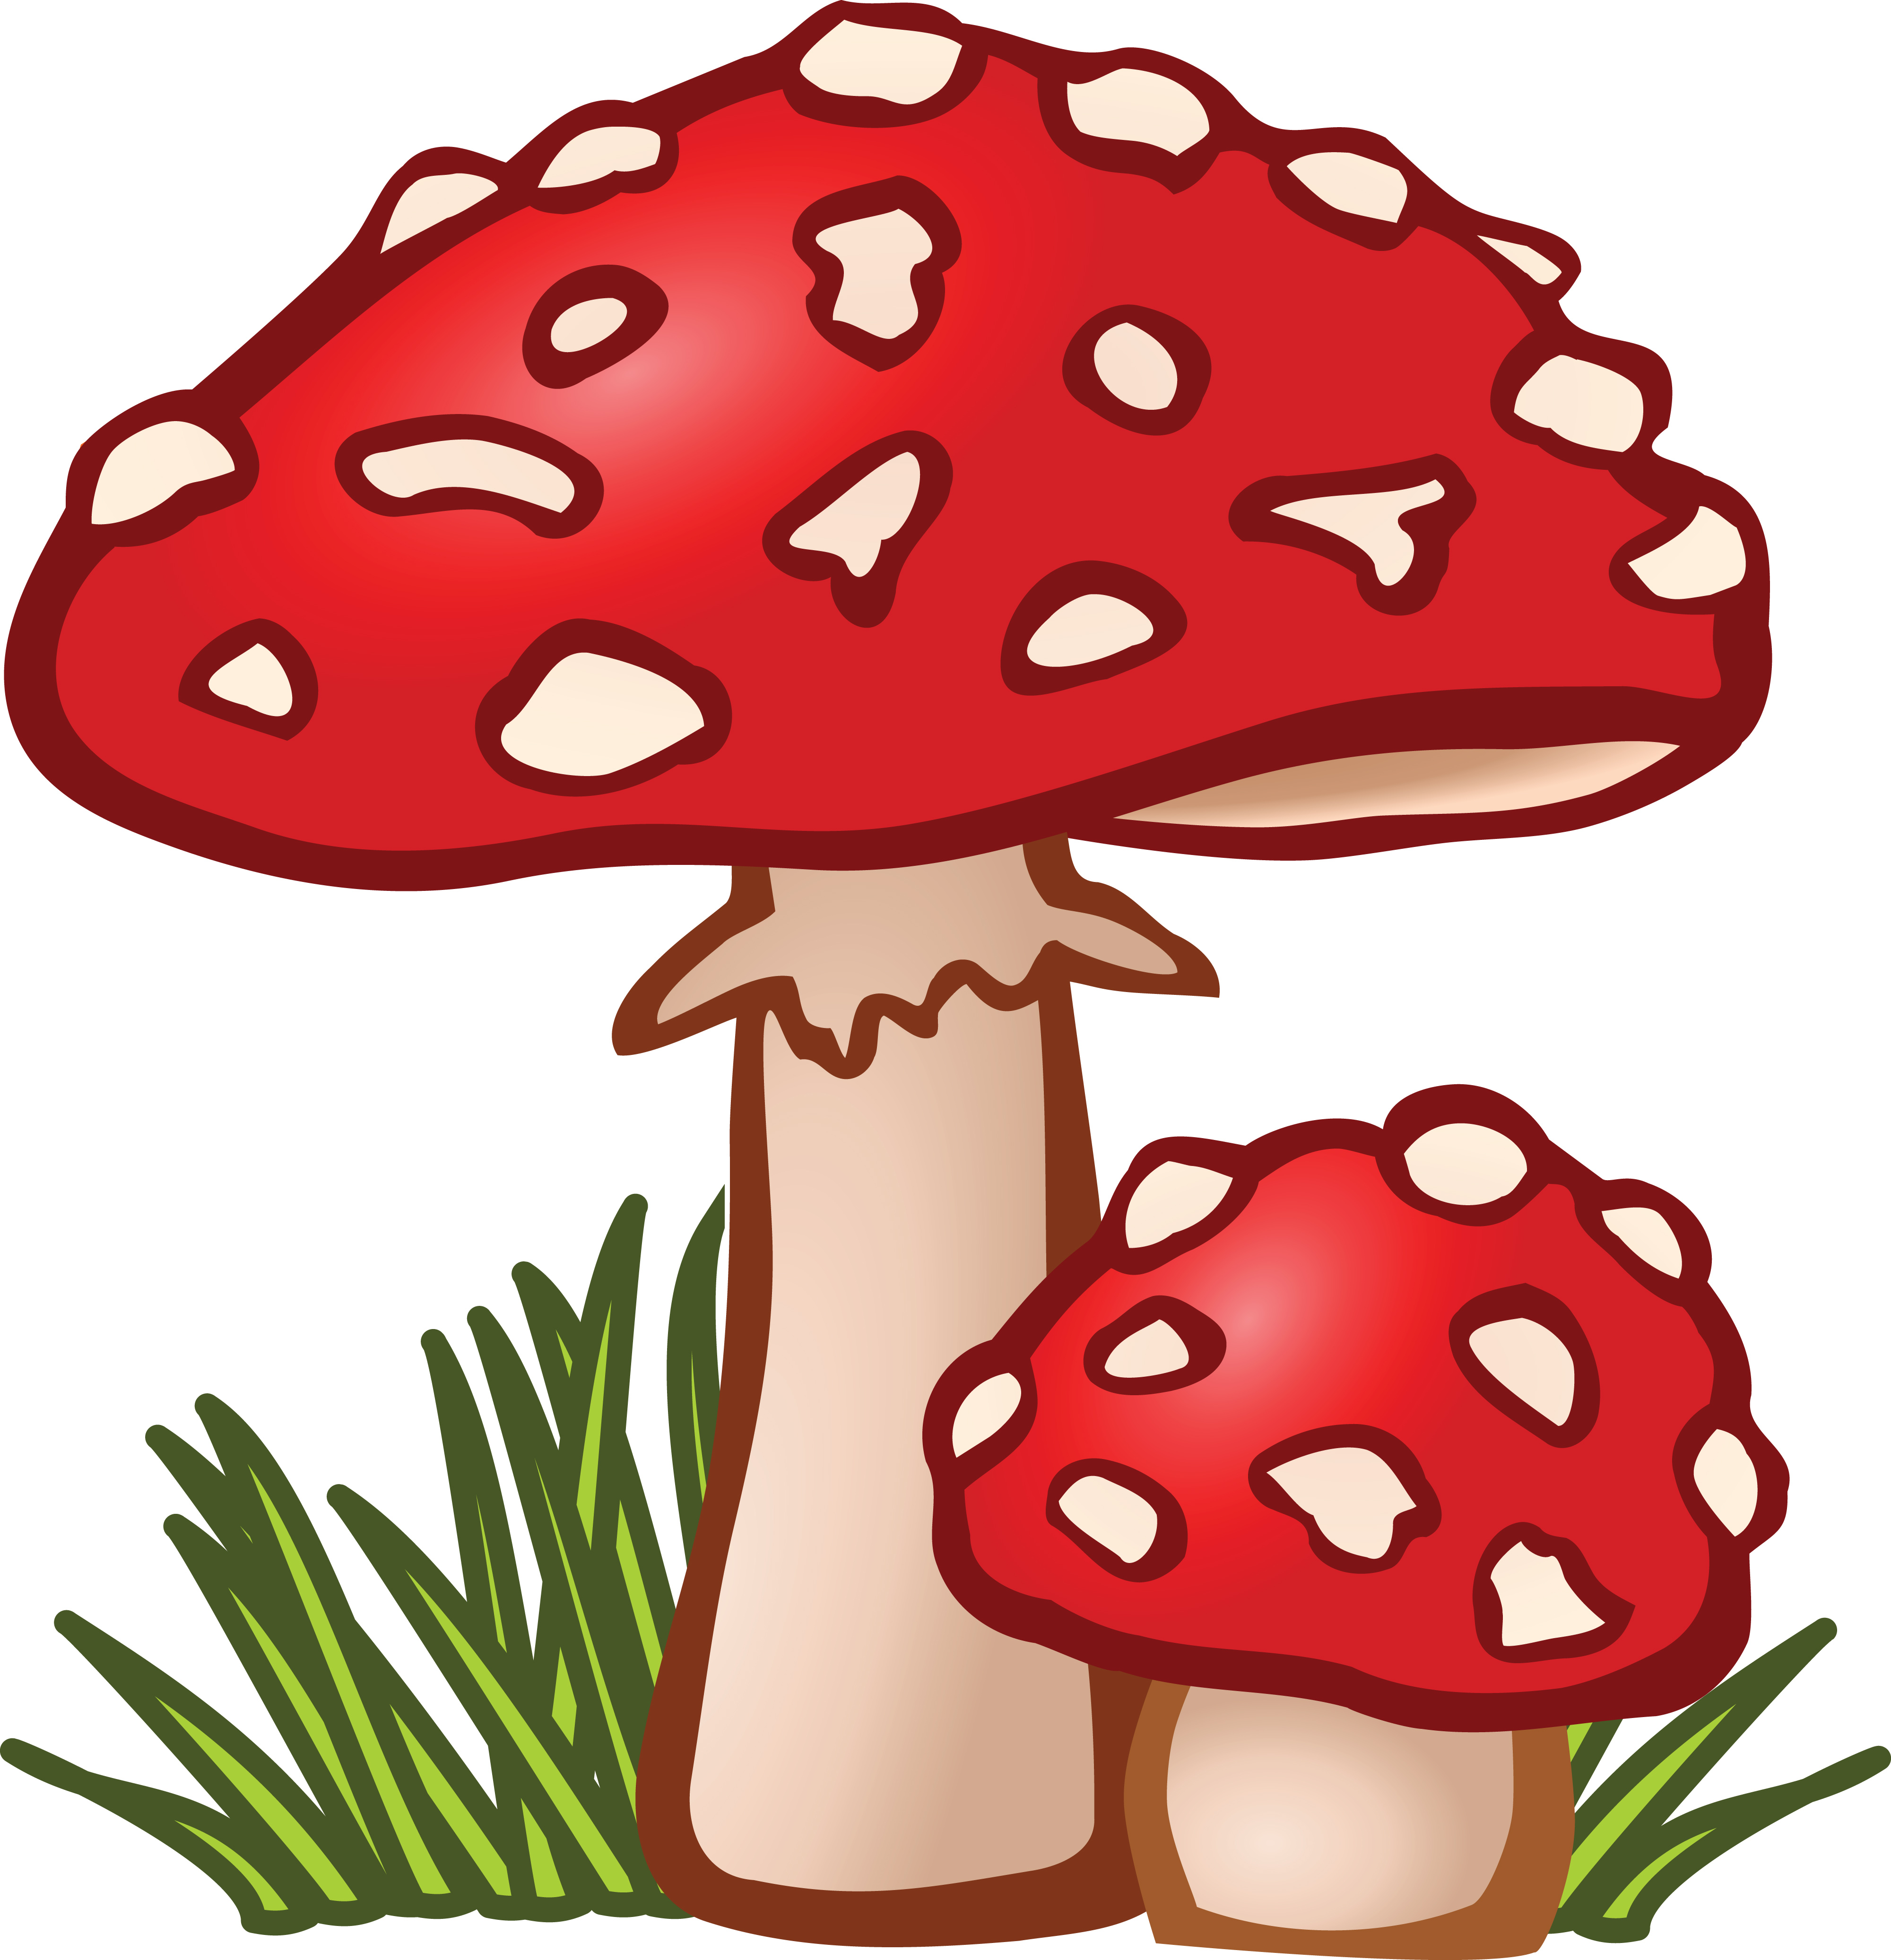 Free Clipart Of mushrooms.